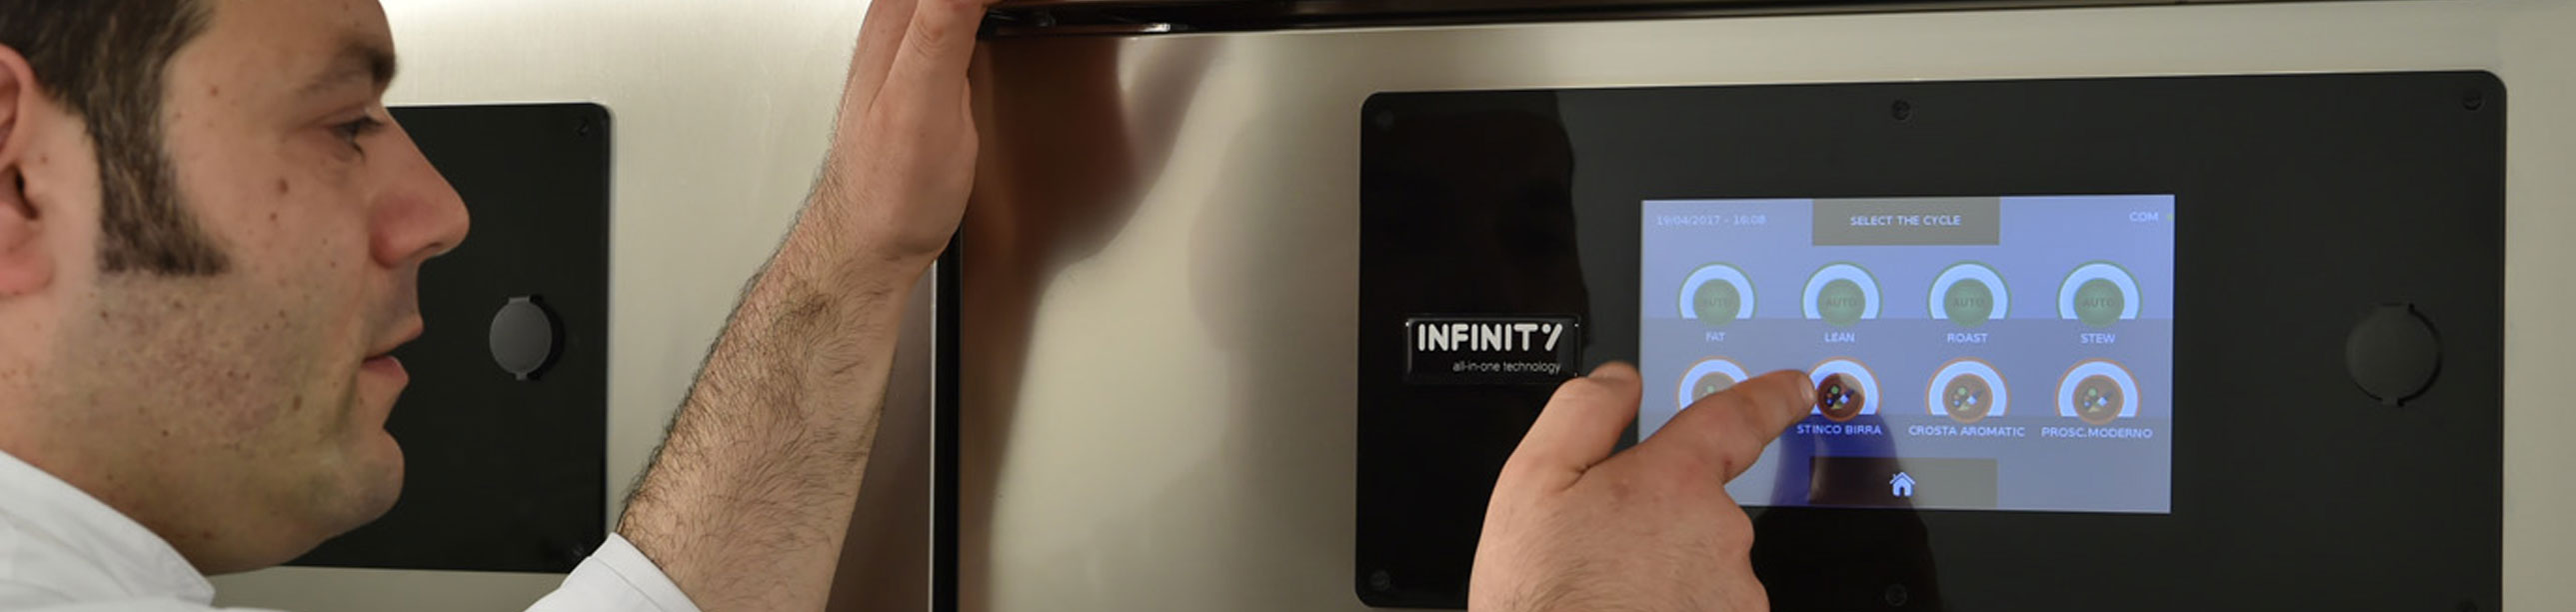 Infinity 5 all-in-one